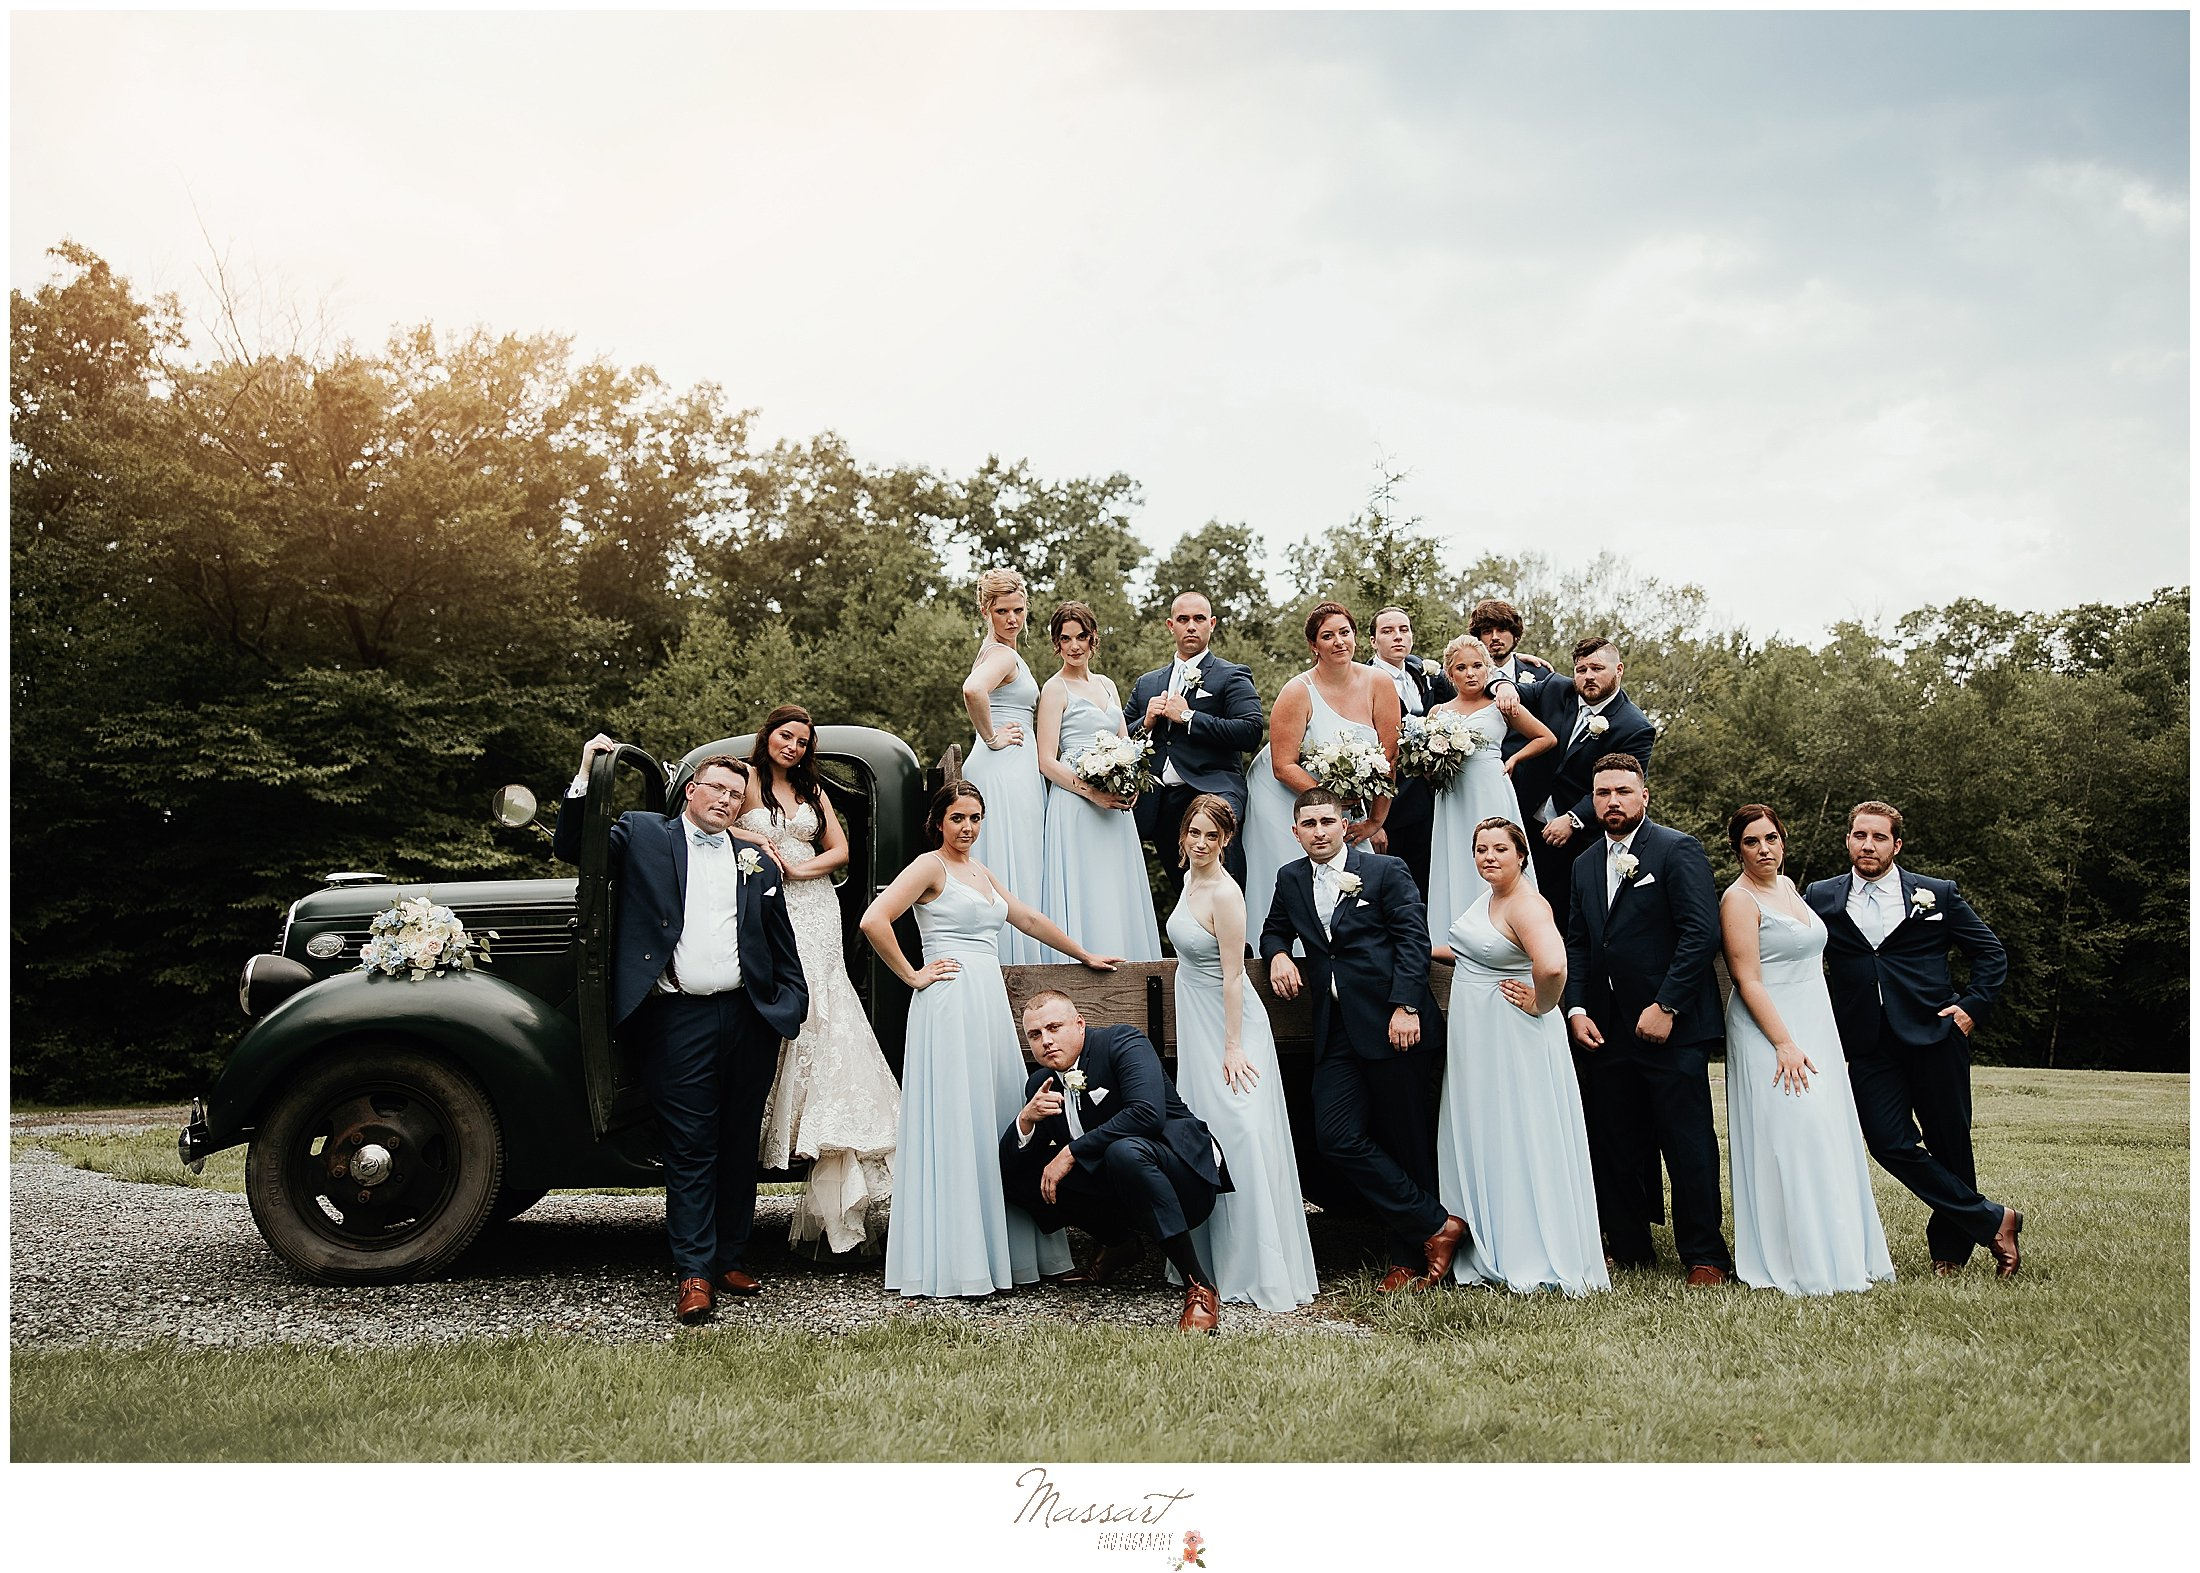 Bridal party poses on vintage truck at Five Bridge Inn for Massart Photographers from RI